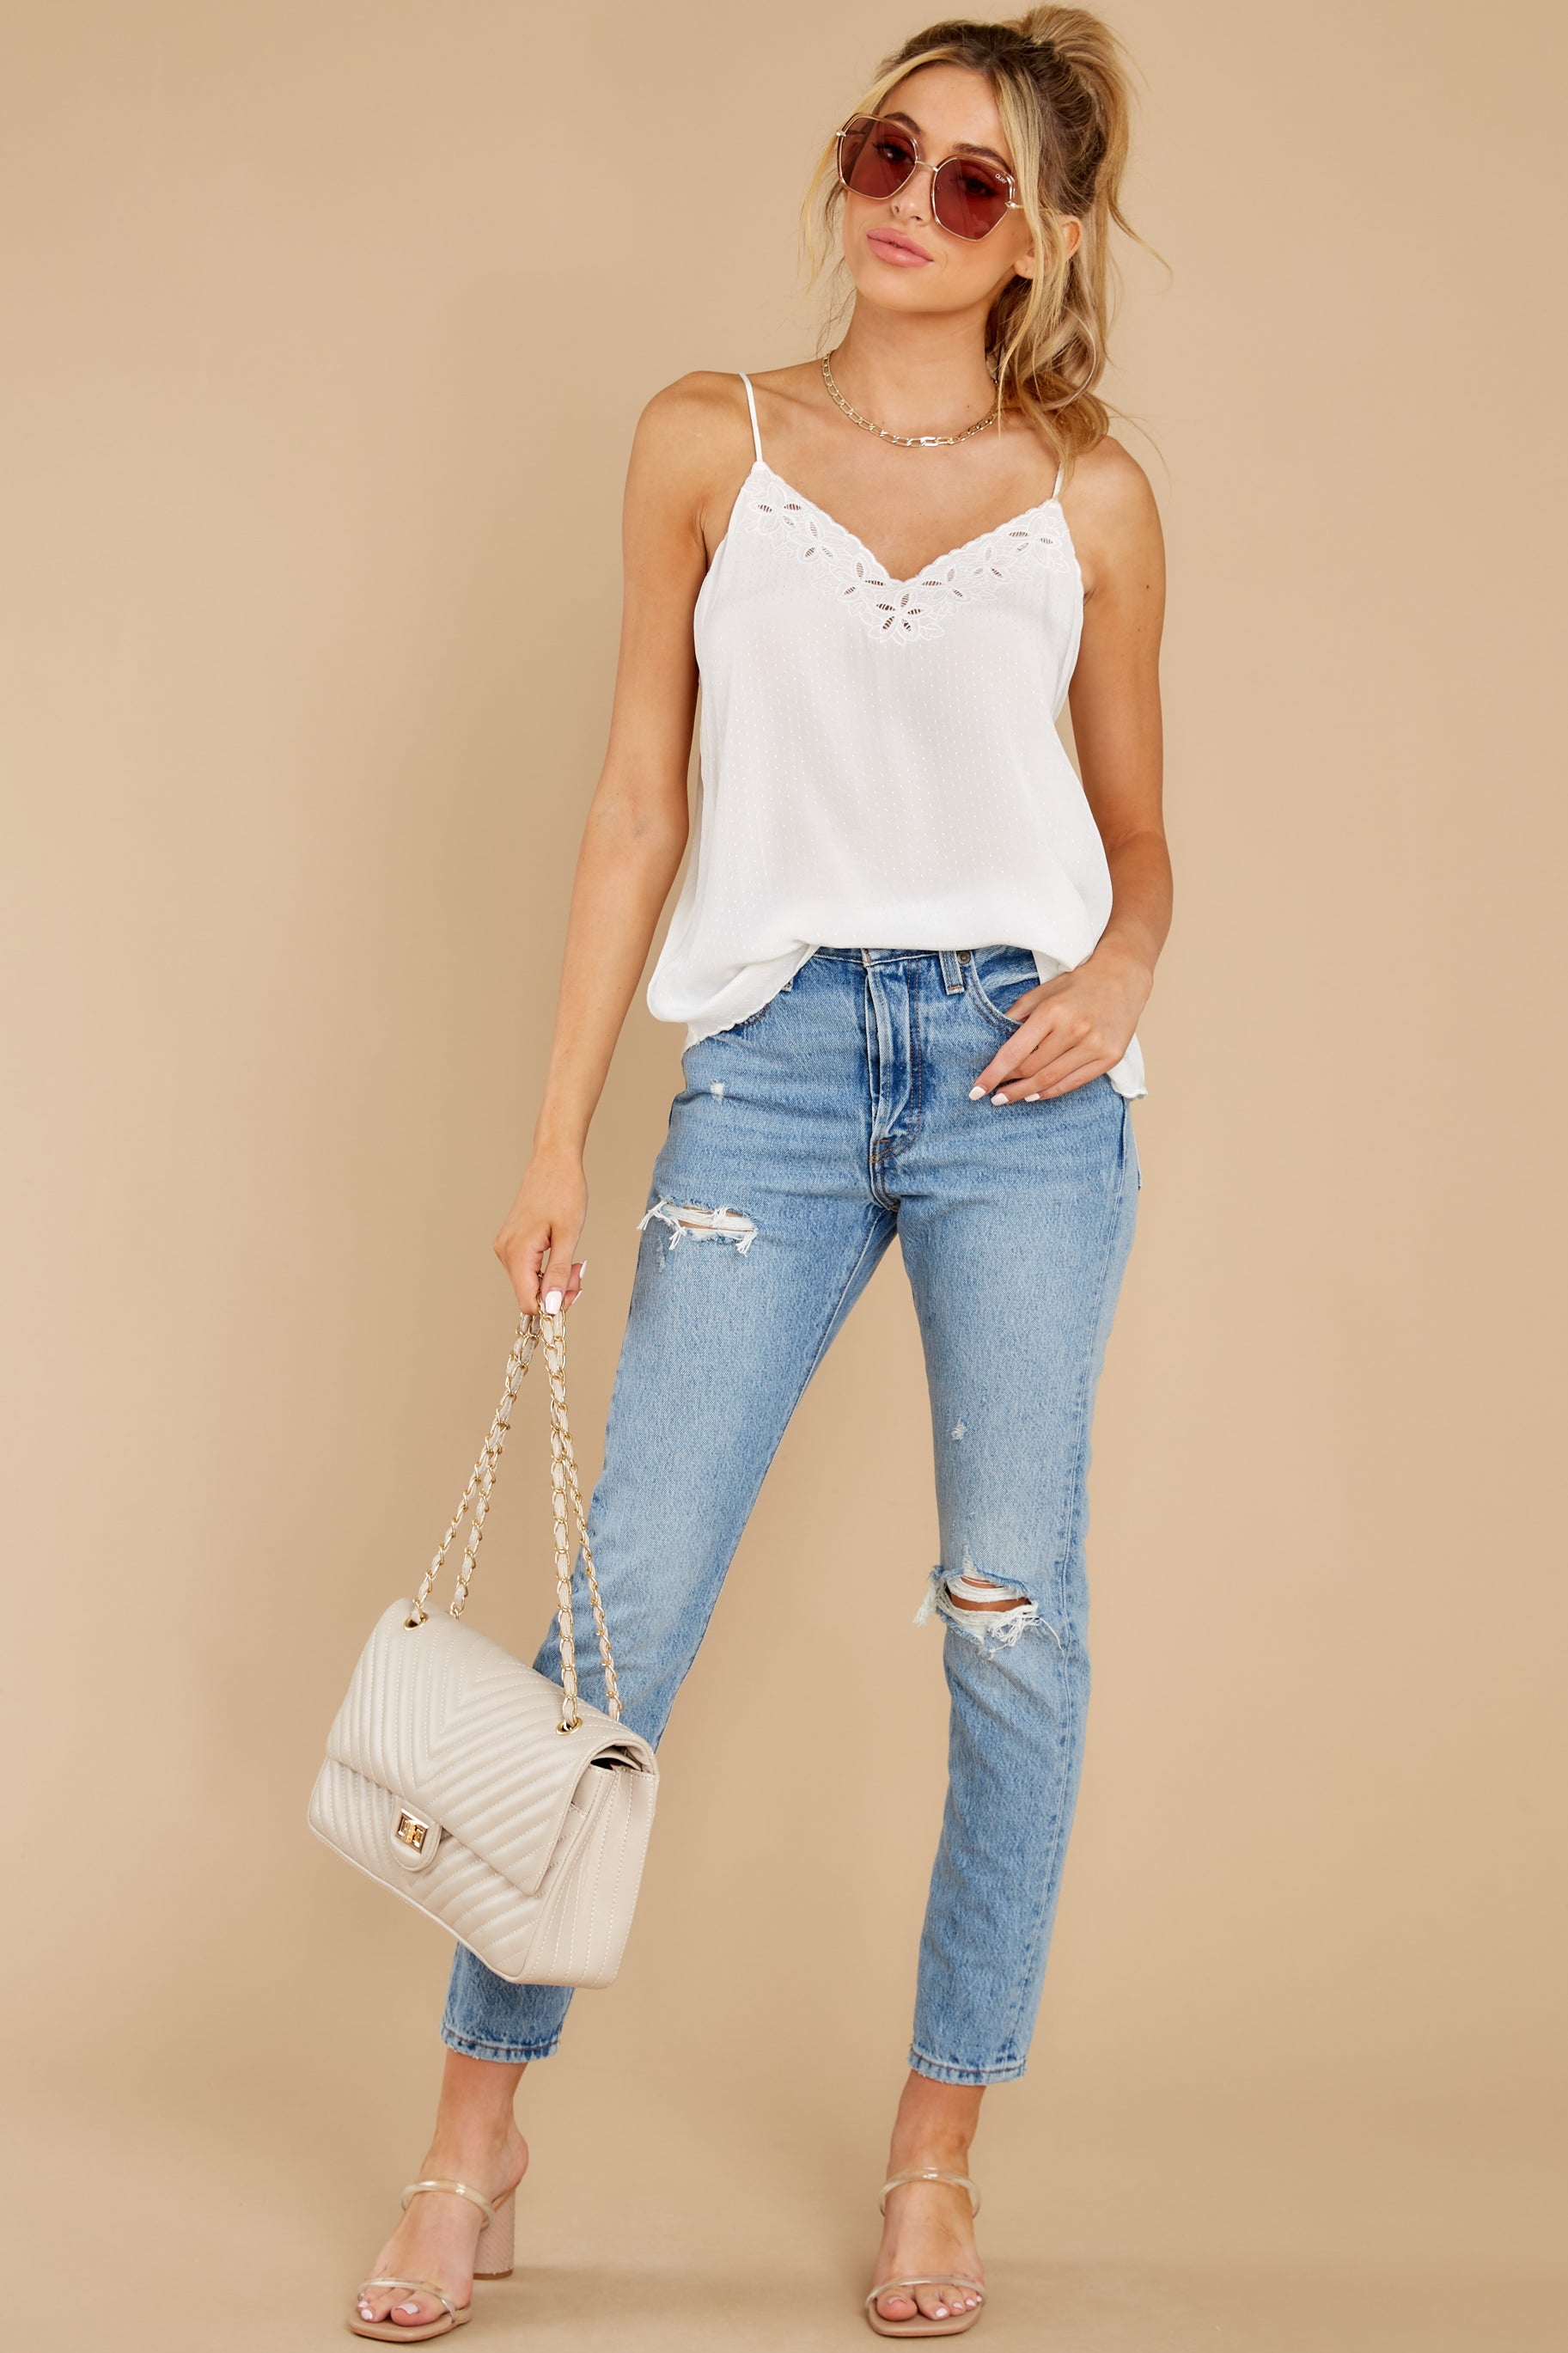 3 Lover Lane White Eyelet Tank Top at reddress.com